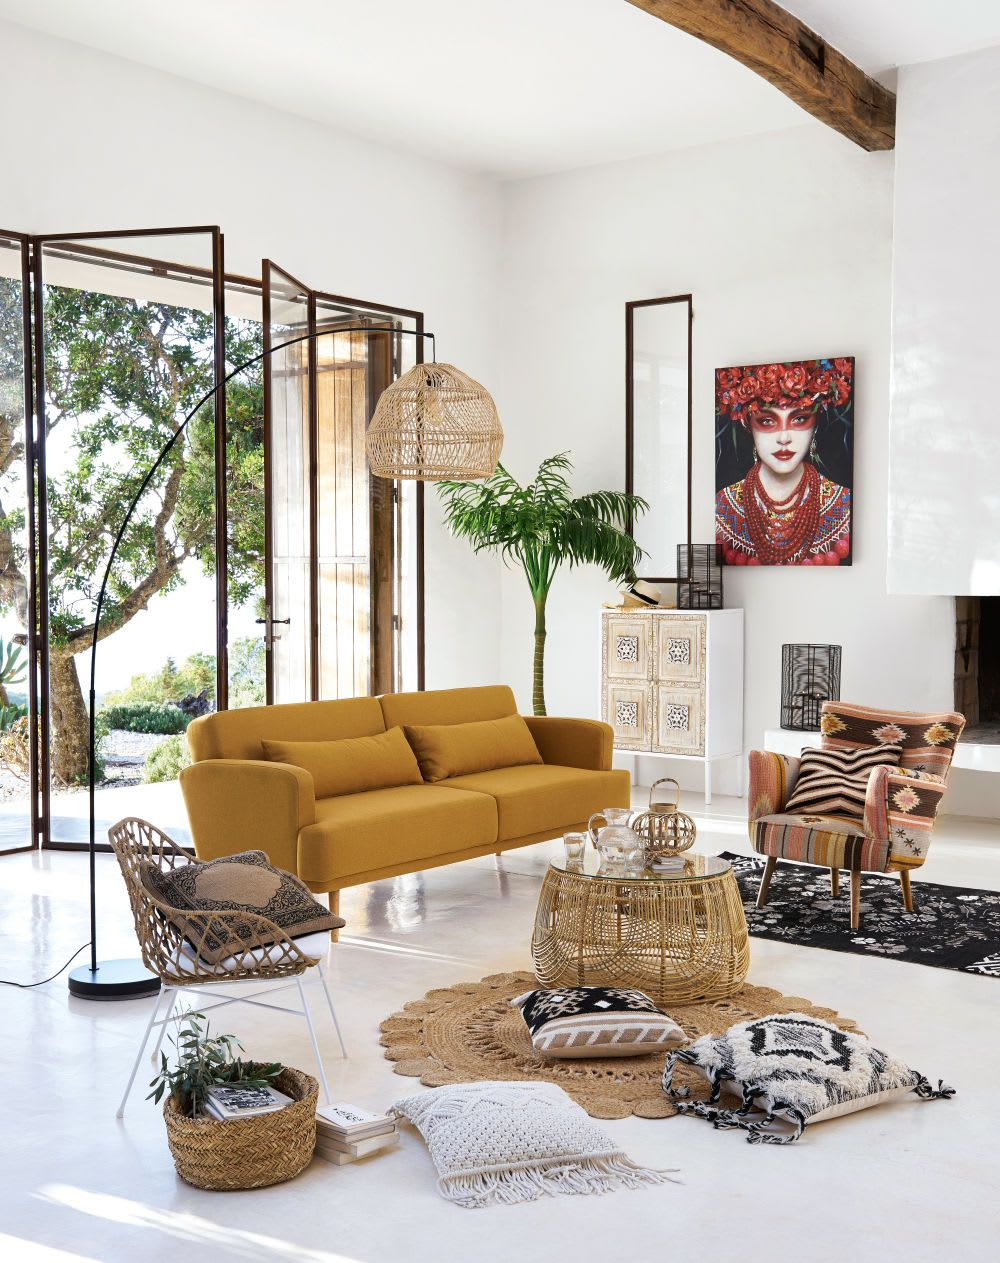 living room, white seamless floor, white wall, yellow sofa, rattan chair, rattan coffee table, rattan rug, rattan lamp